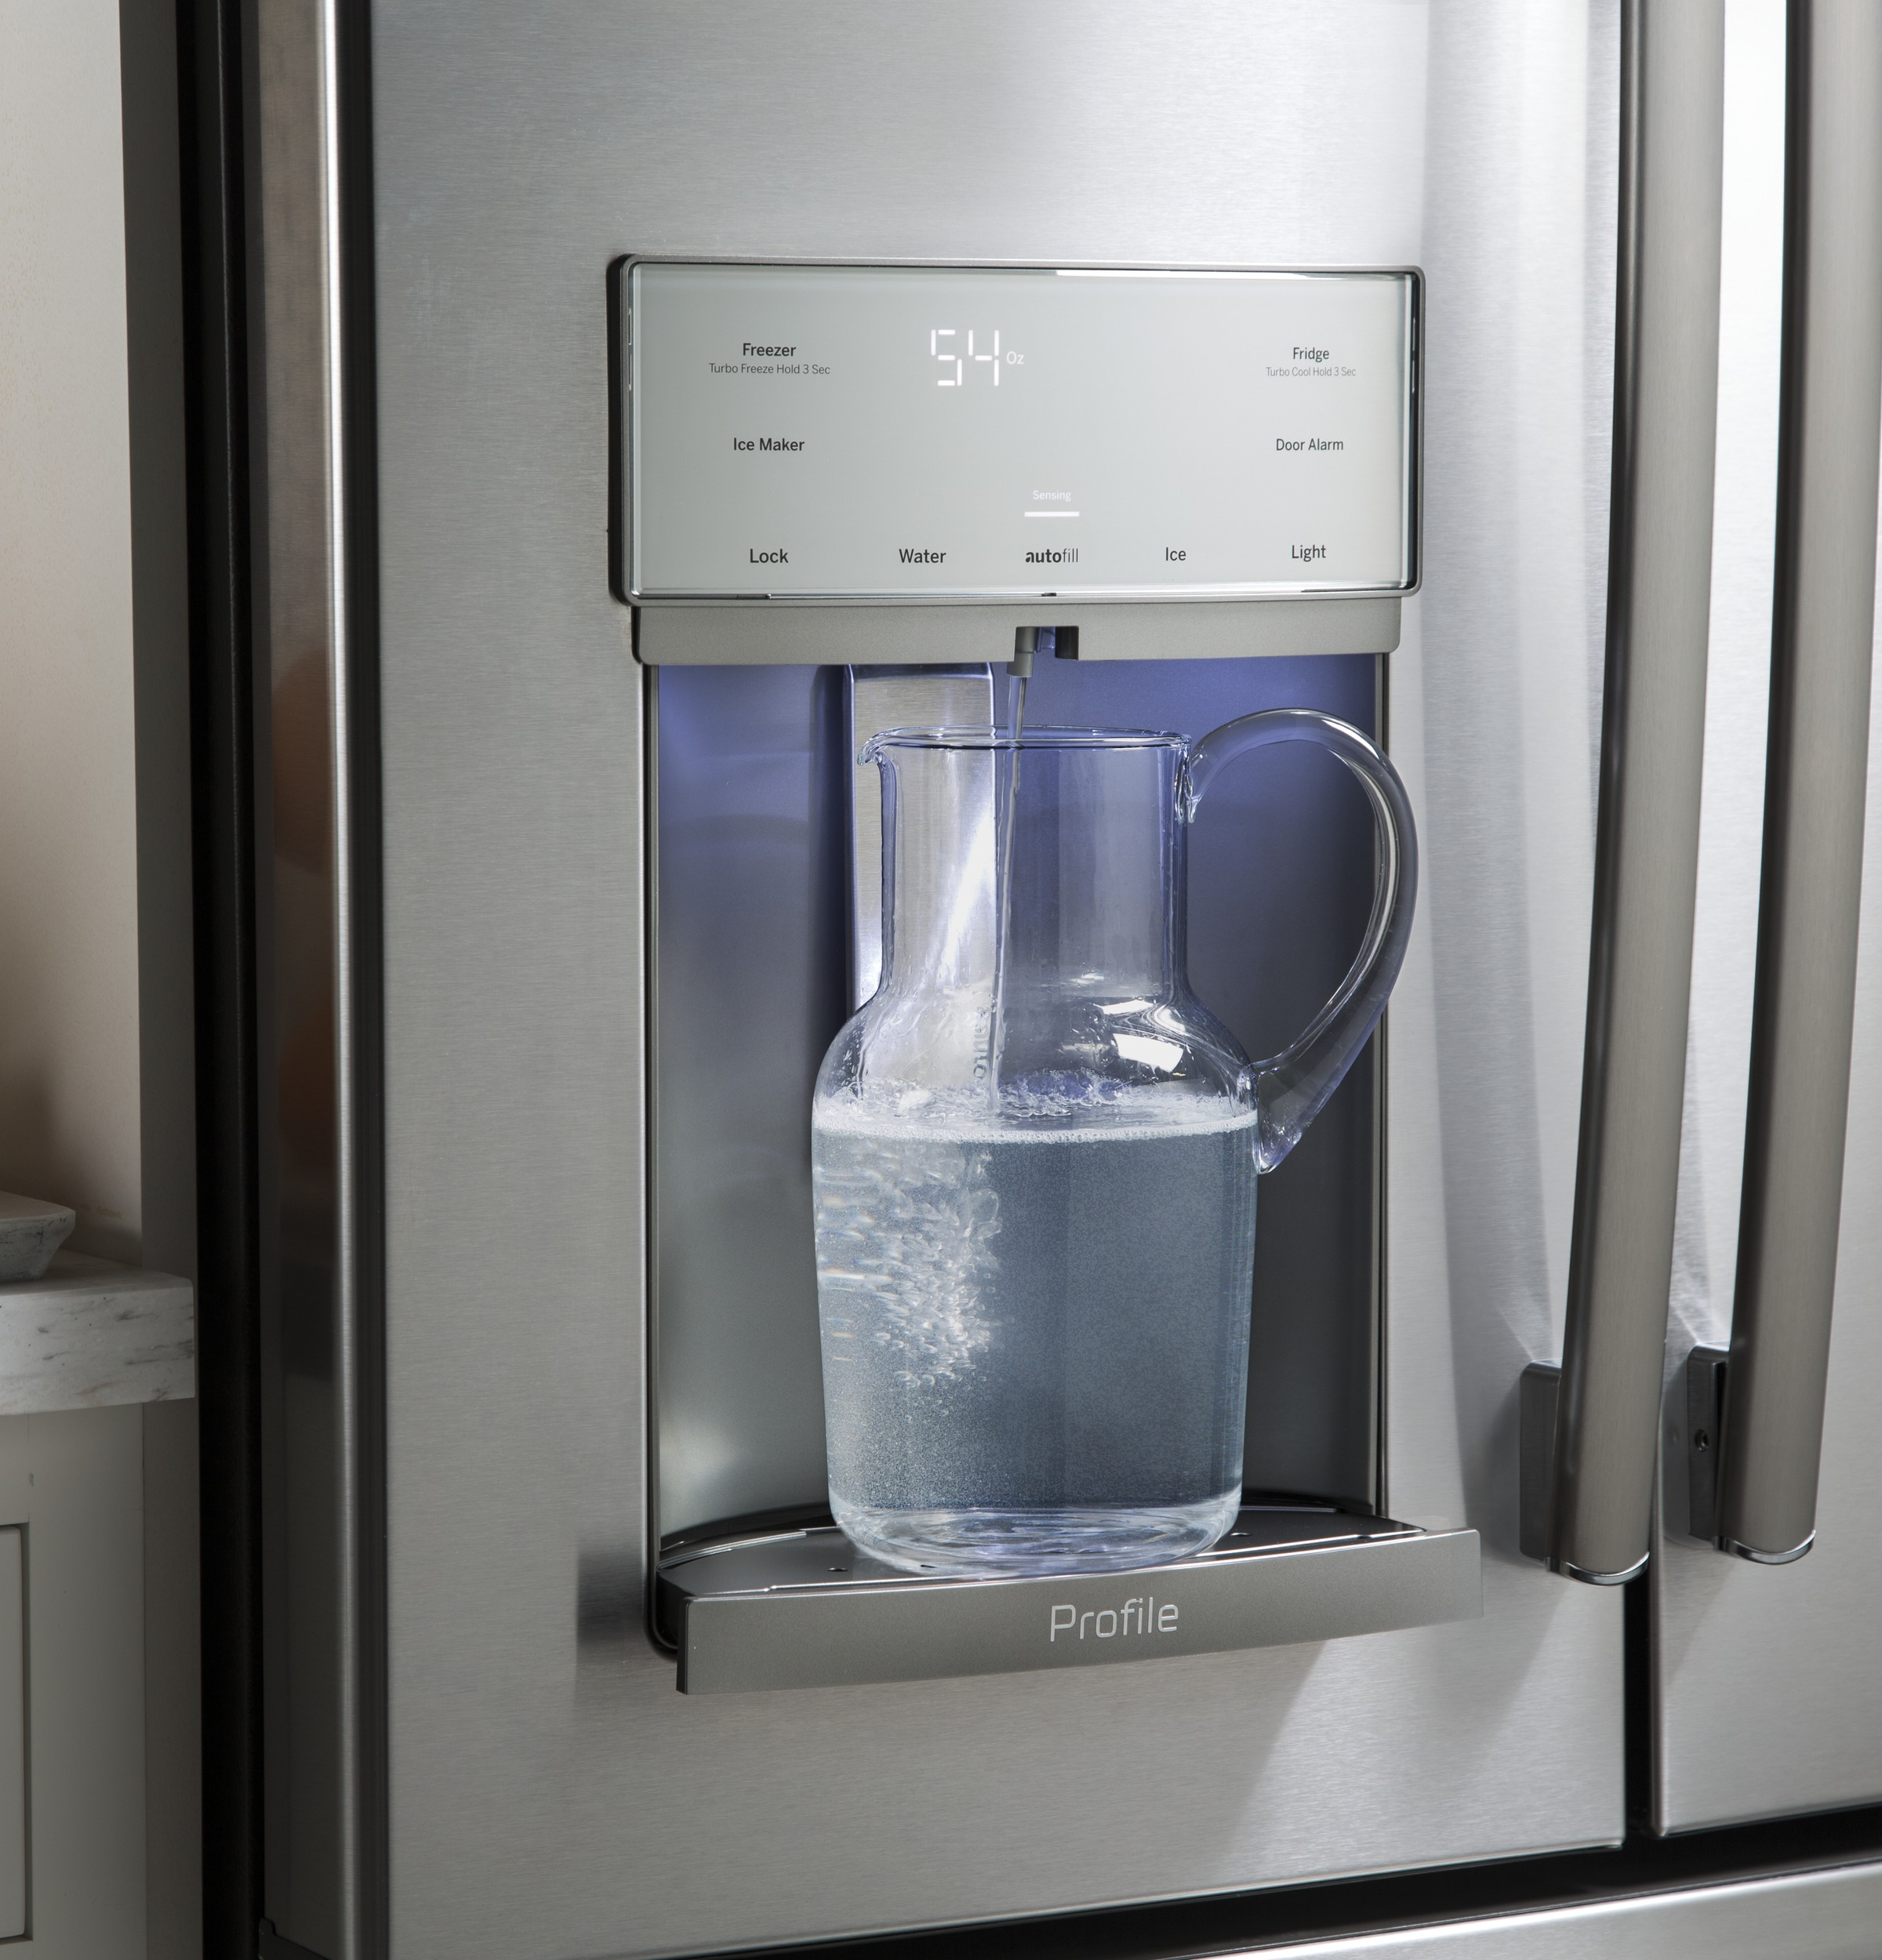 Model: PFE28KELDS | GE Profile™ Series ENERGY STAR® 27.8 Cu. Ft. French-Door Refrigerator with Hands-Free AutoFill